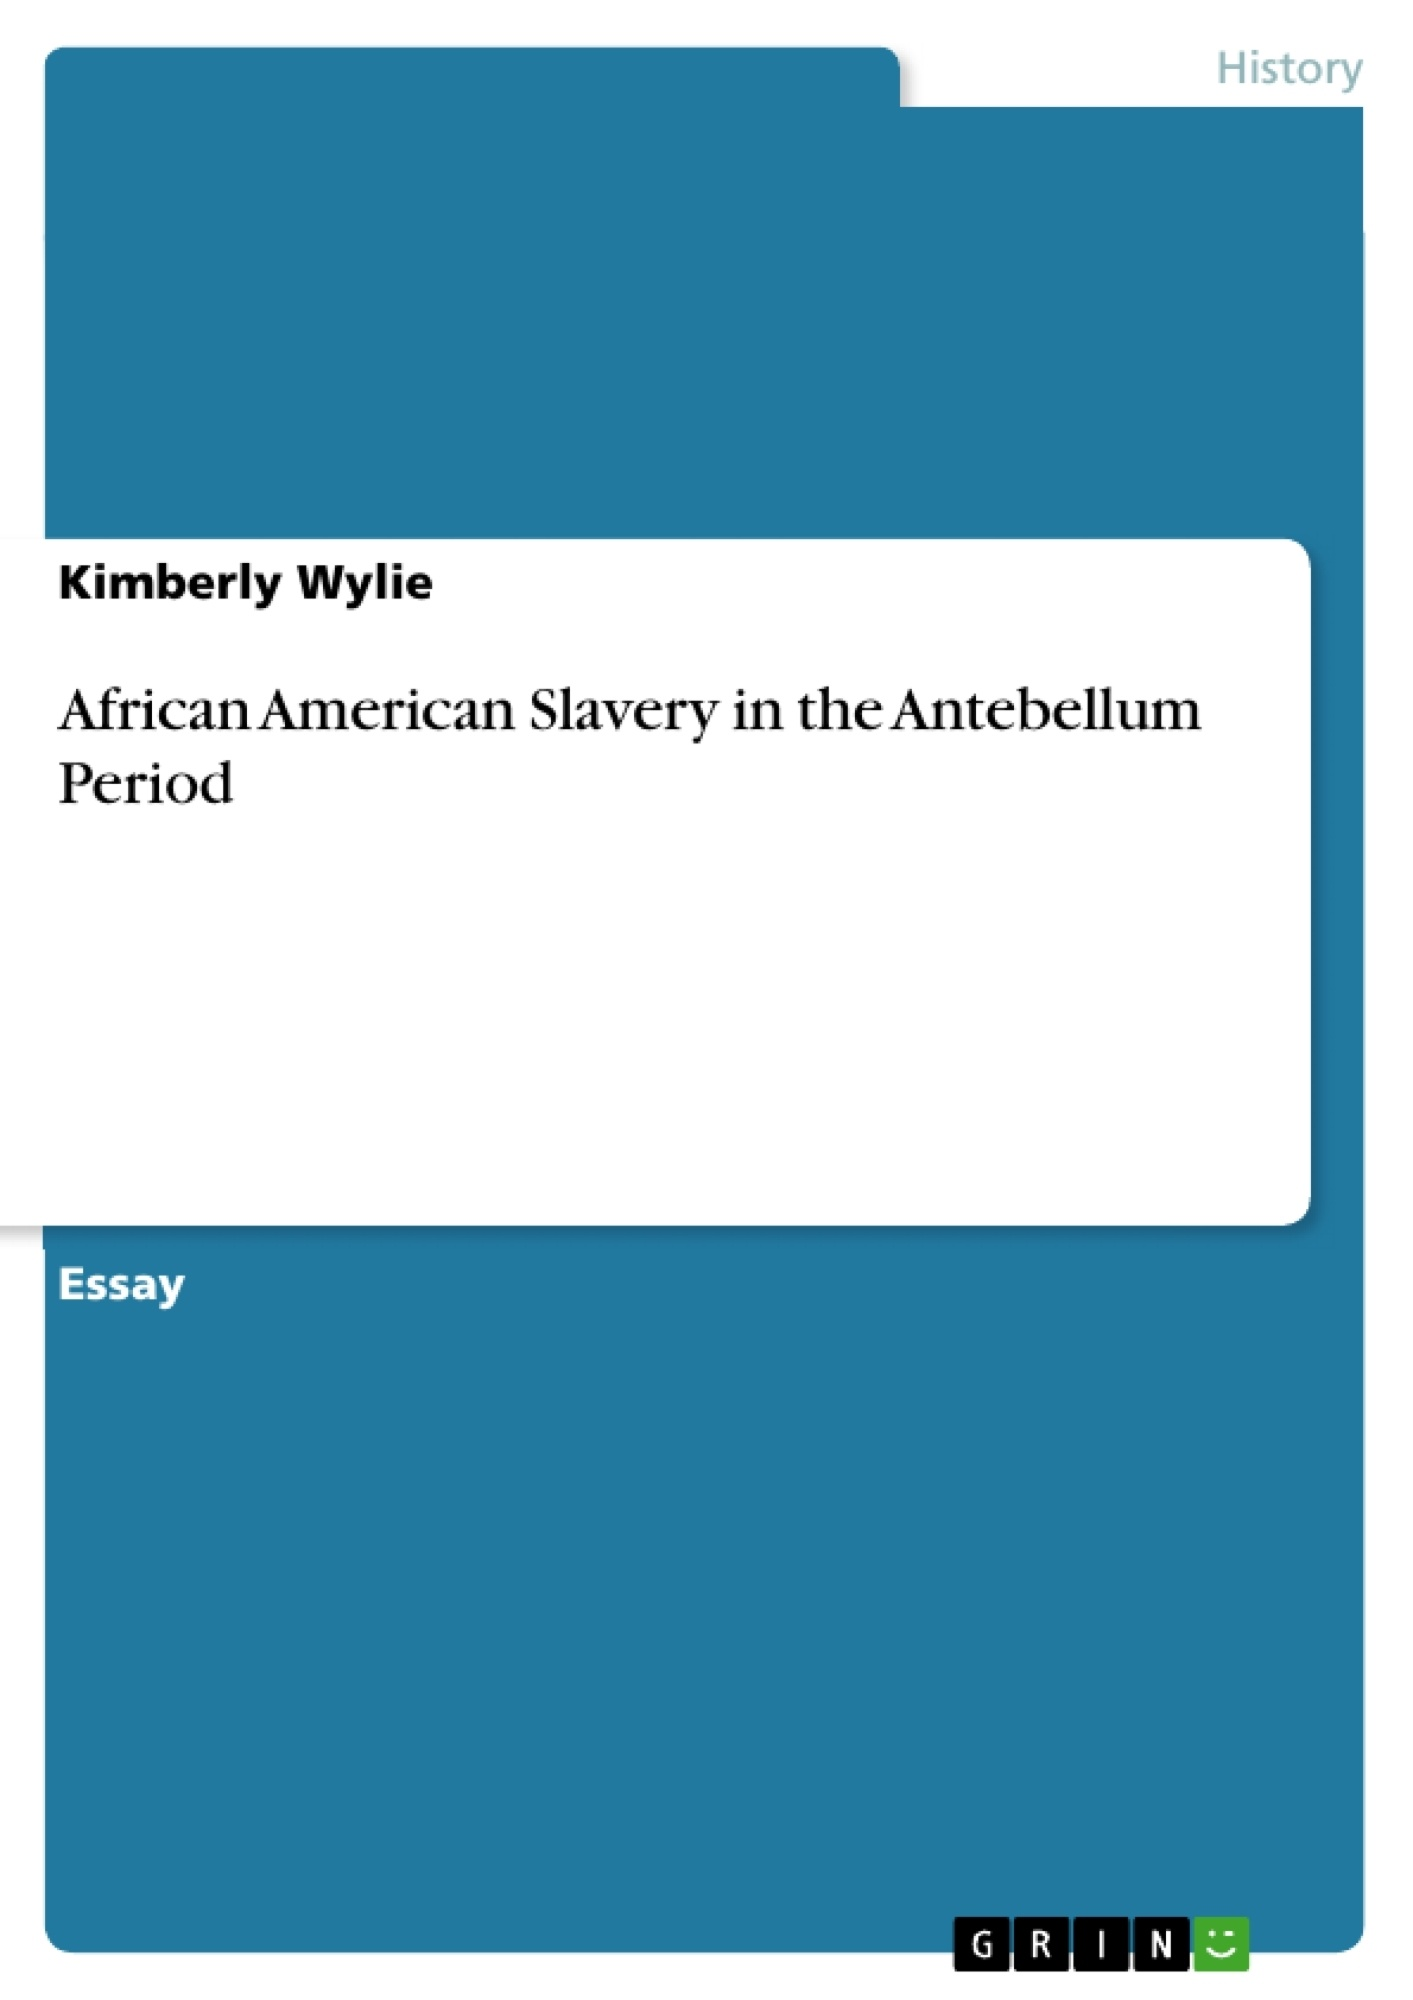 slavery in america essay african american slavery in the  african american slavery in the antebellum period publish your upload your own papers earn money and